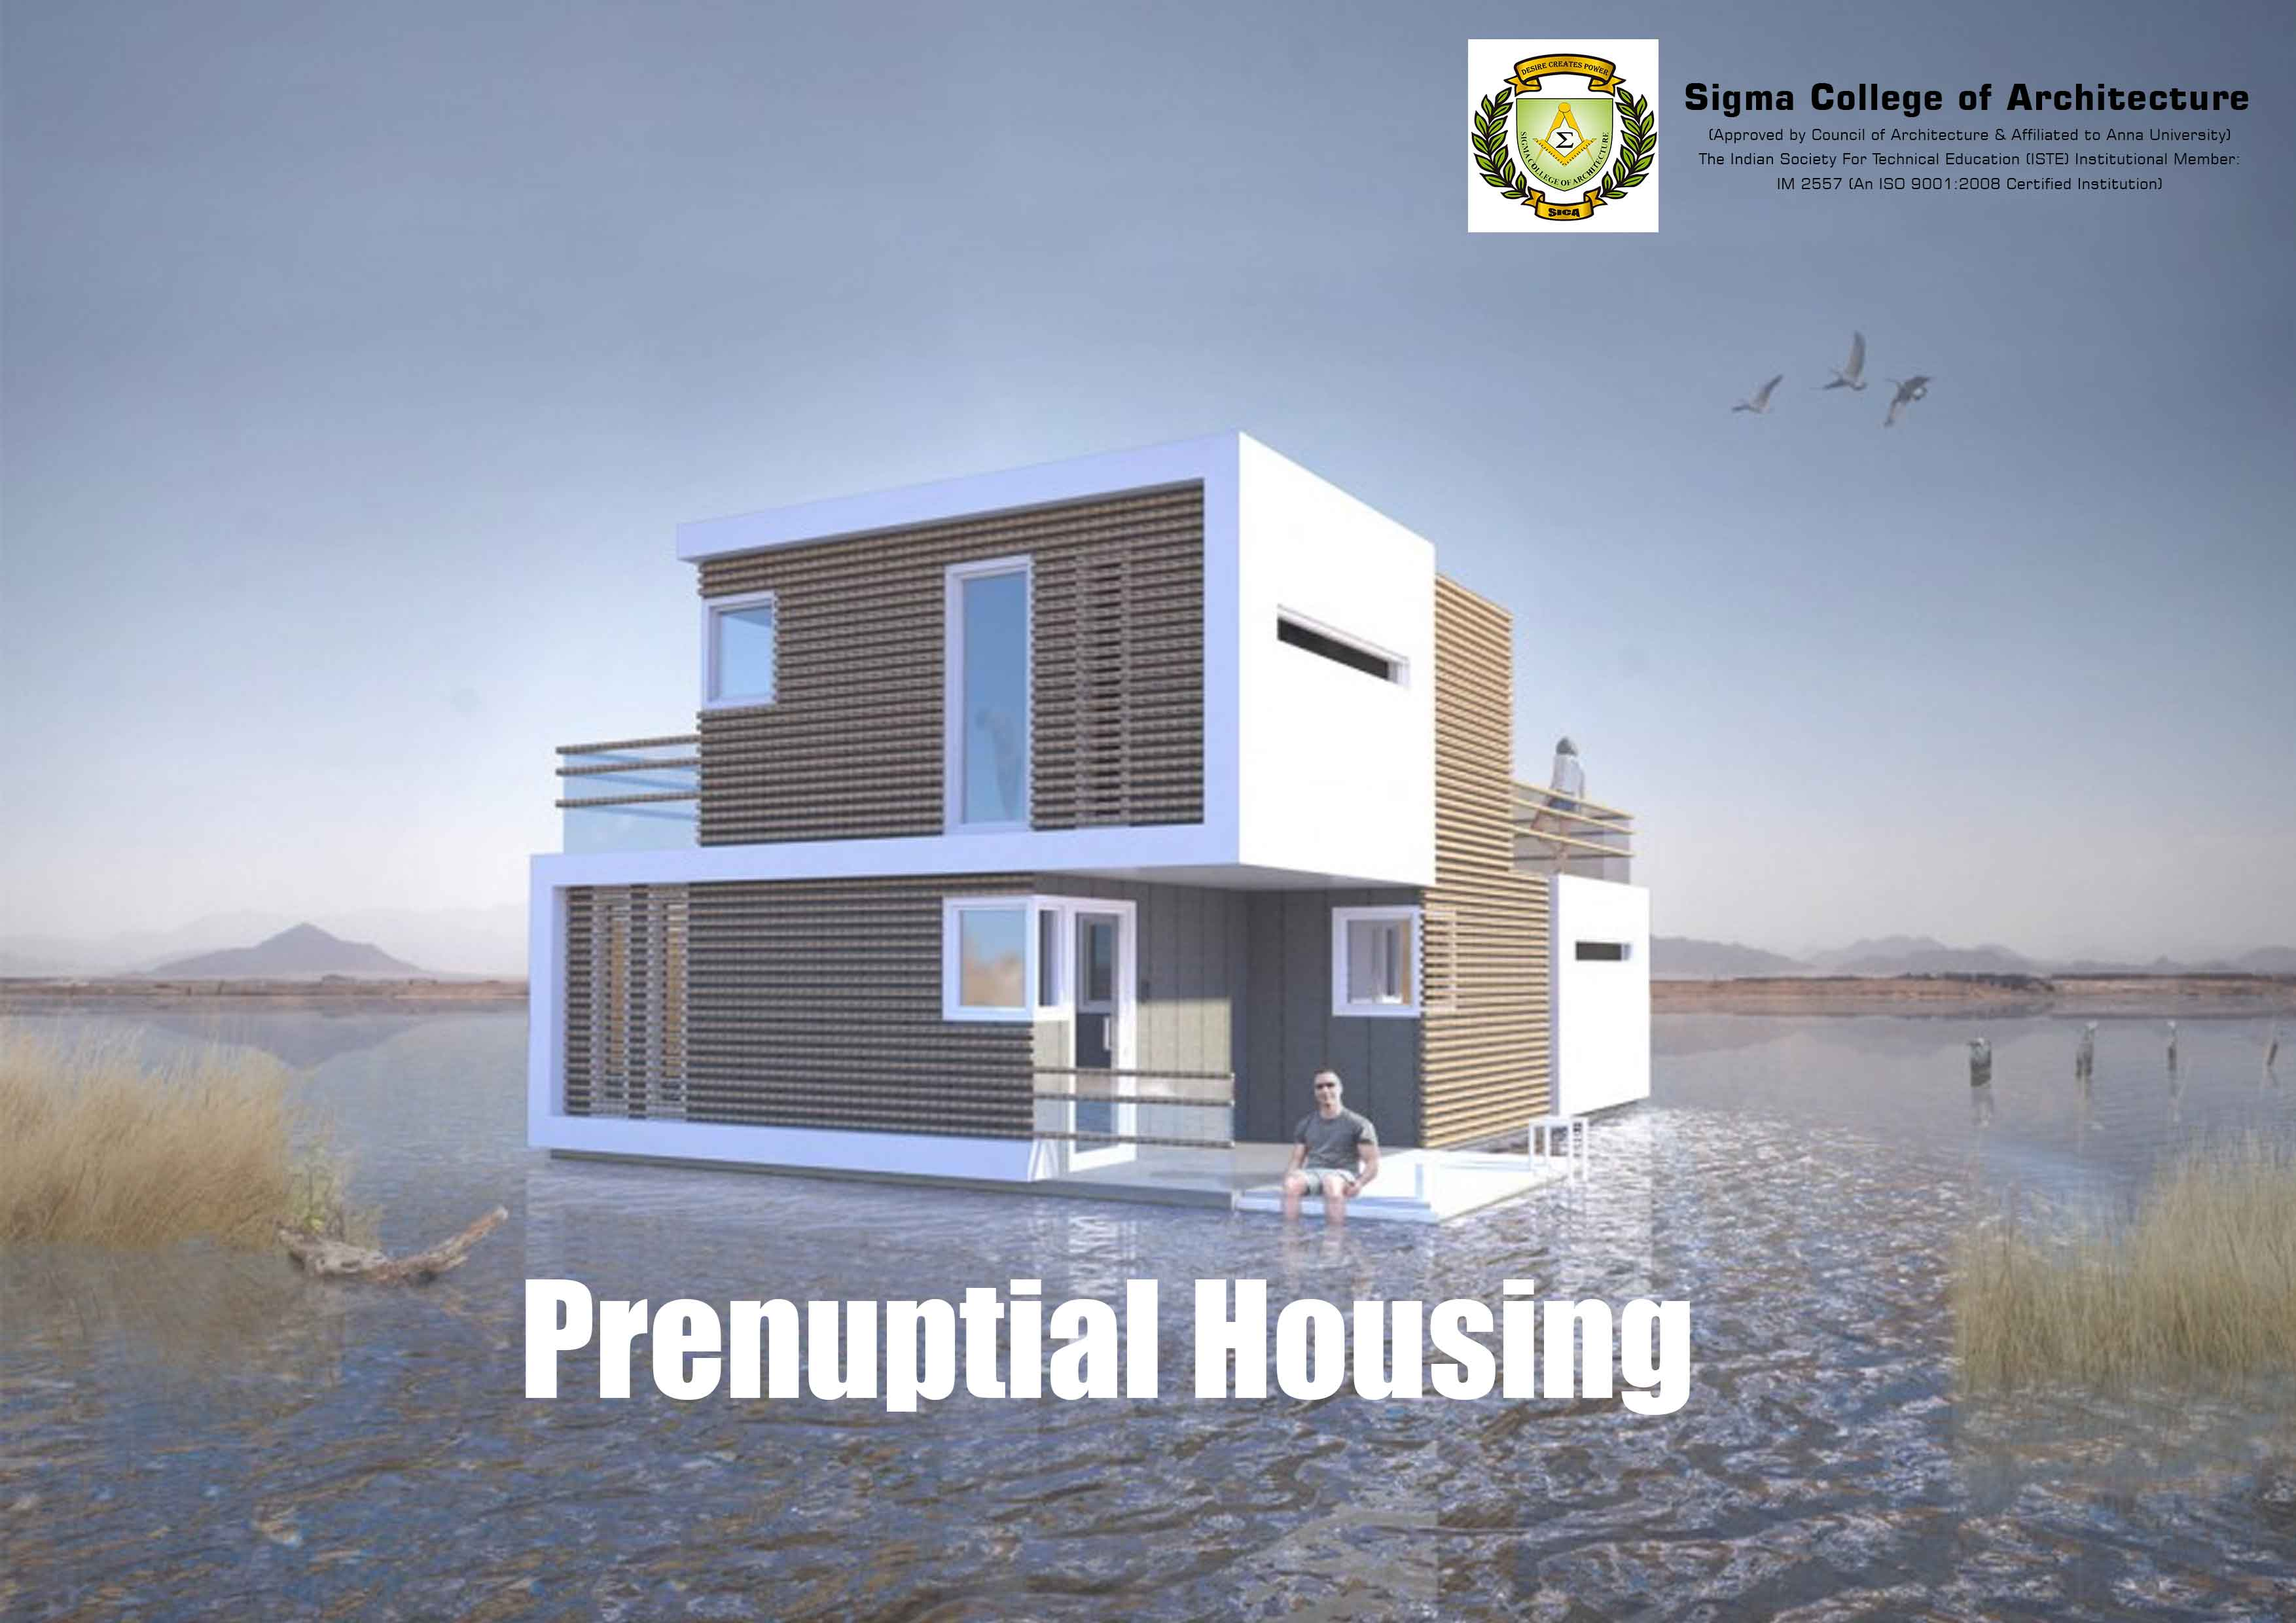 Prenuptial Housing